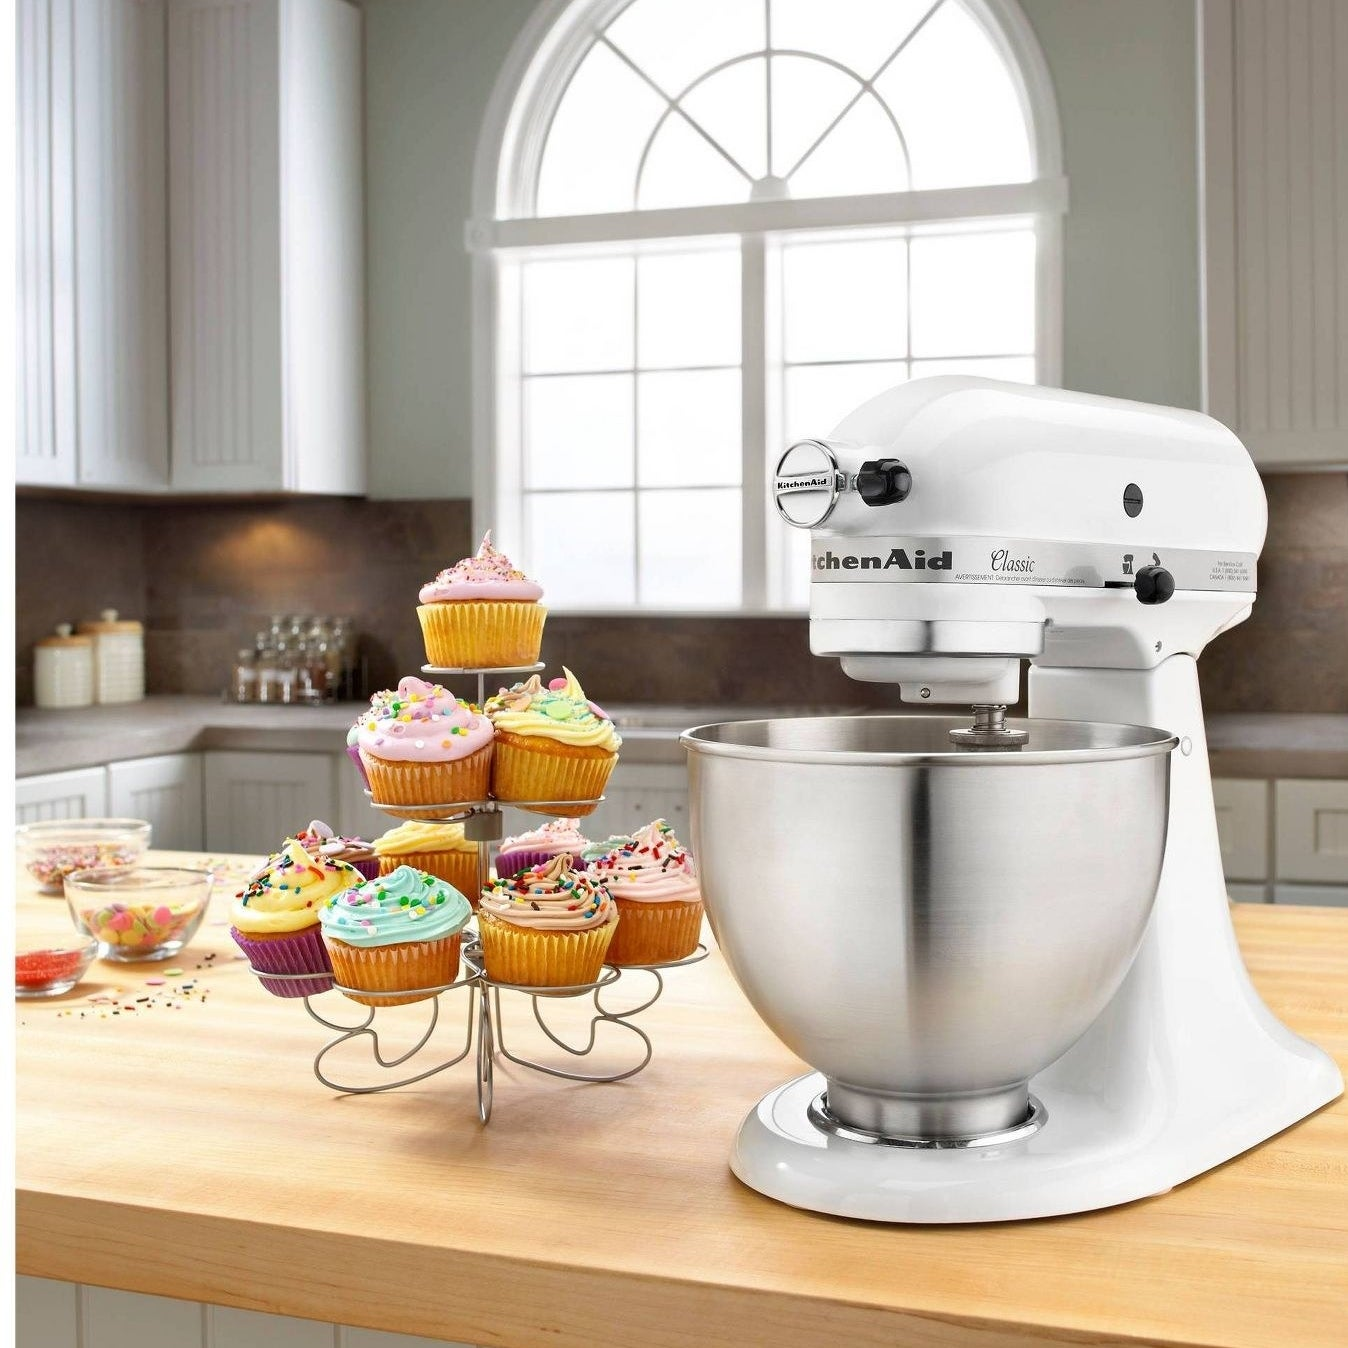 The classic stand mixer